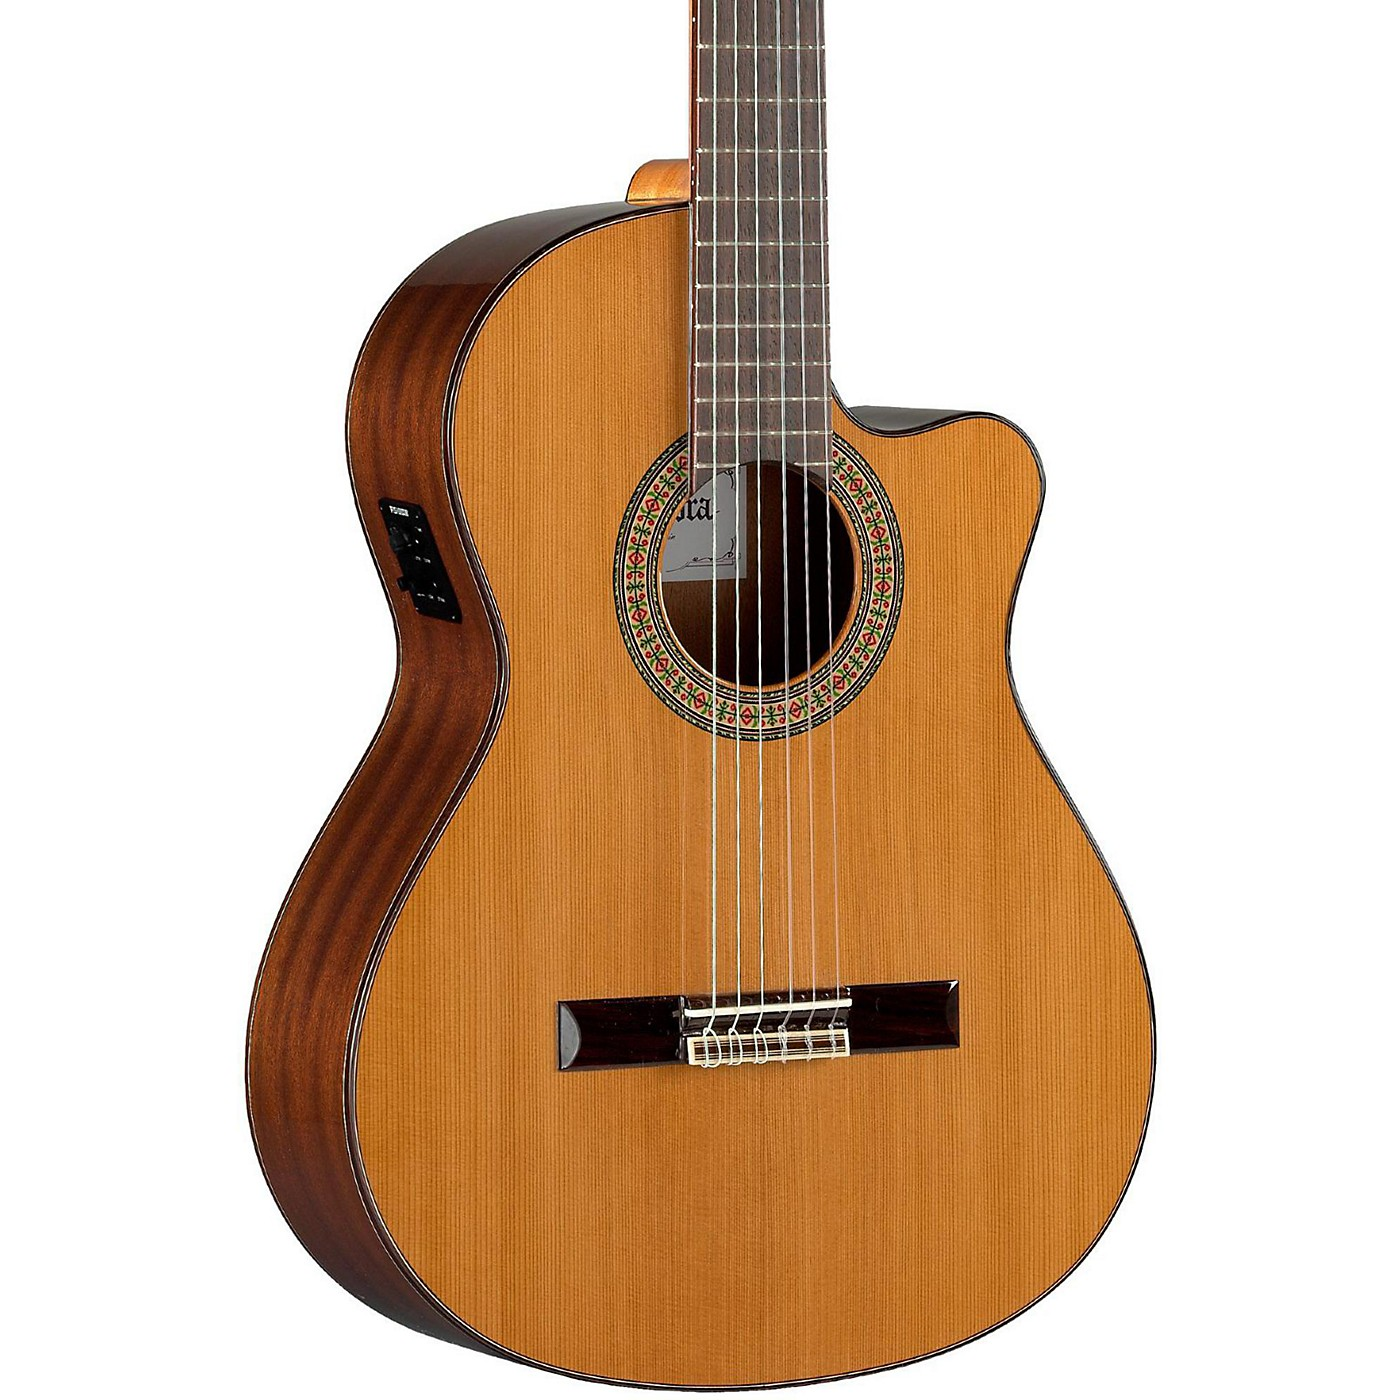 Alhambra 3 C CW Classical Acoustic-Electric Guitar thumbnail